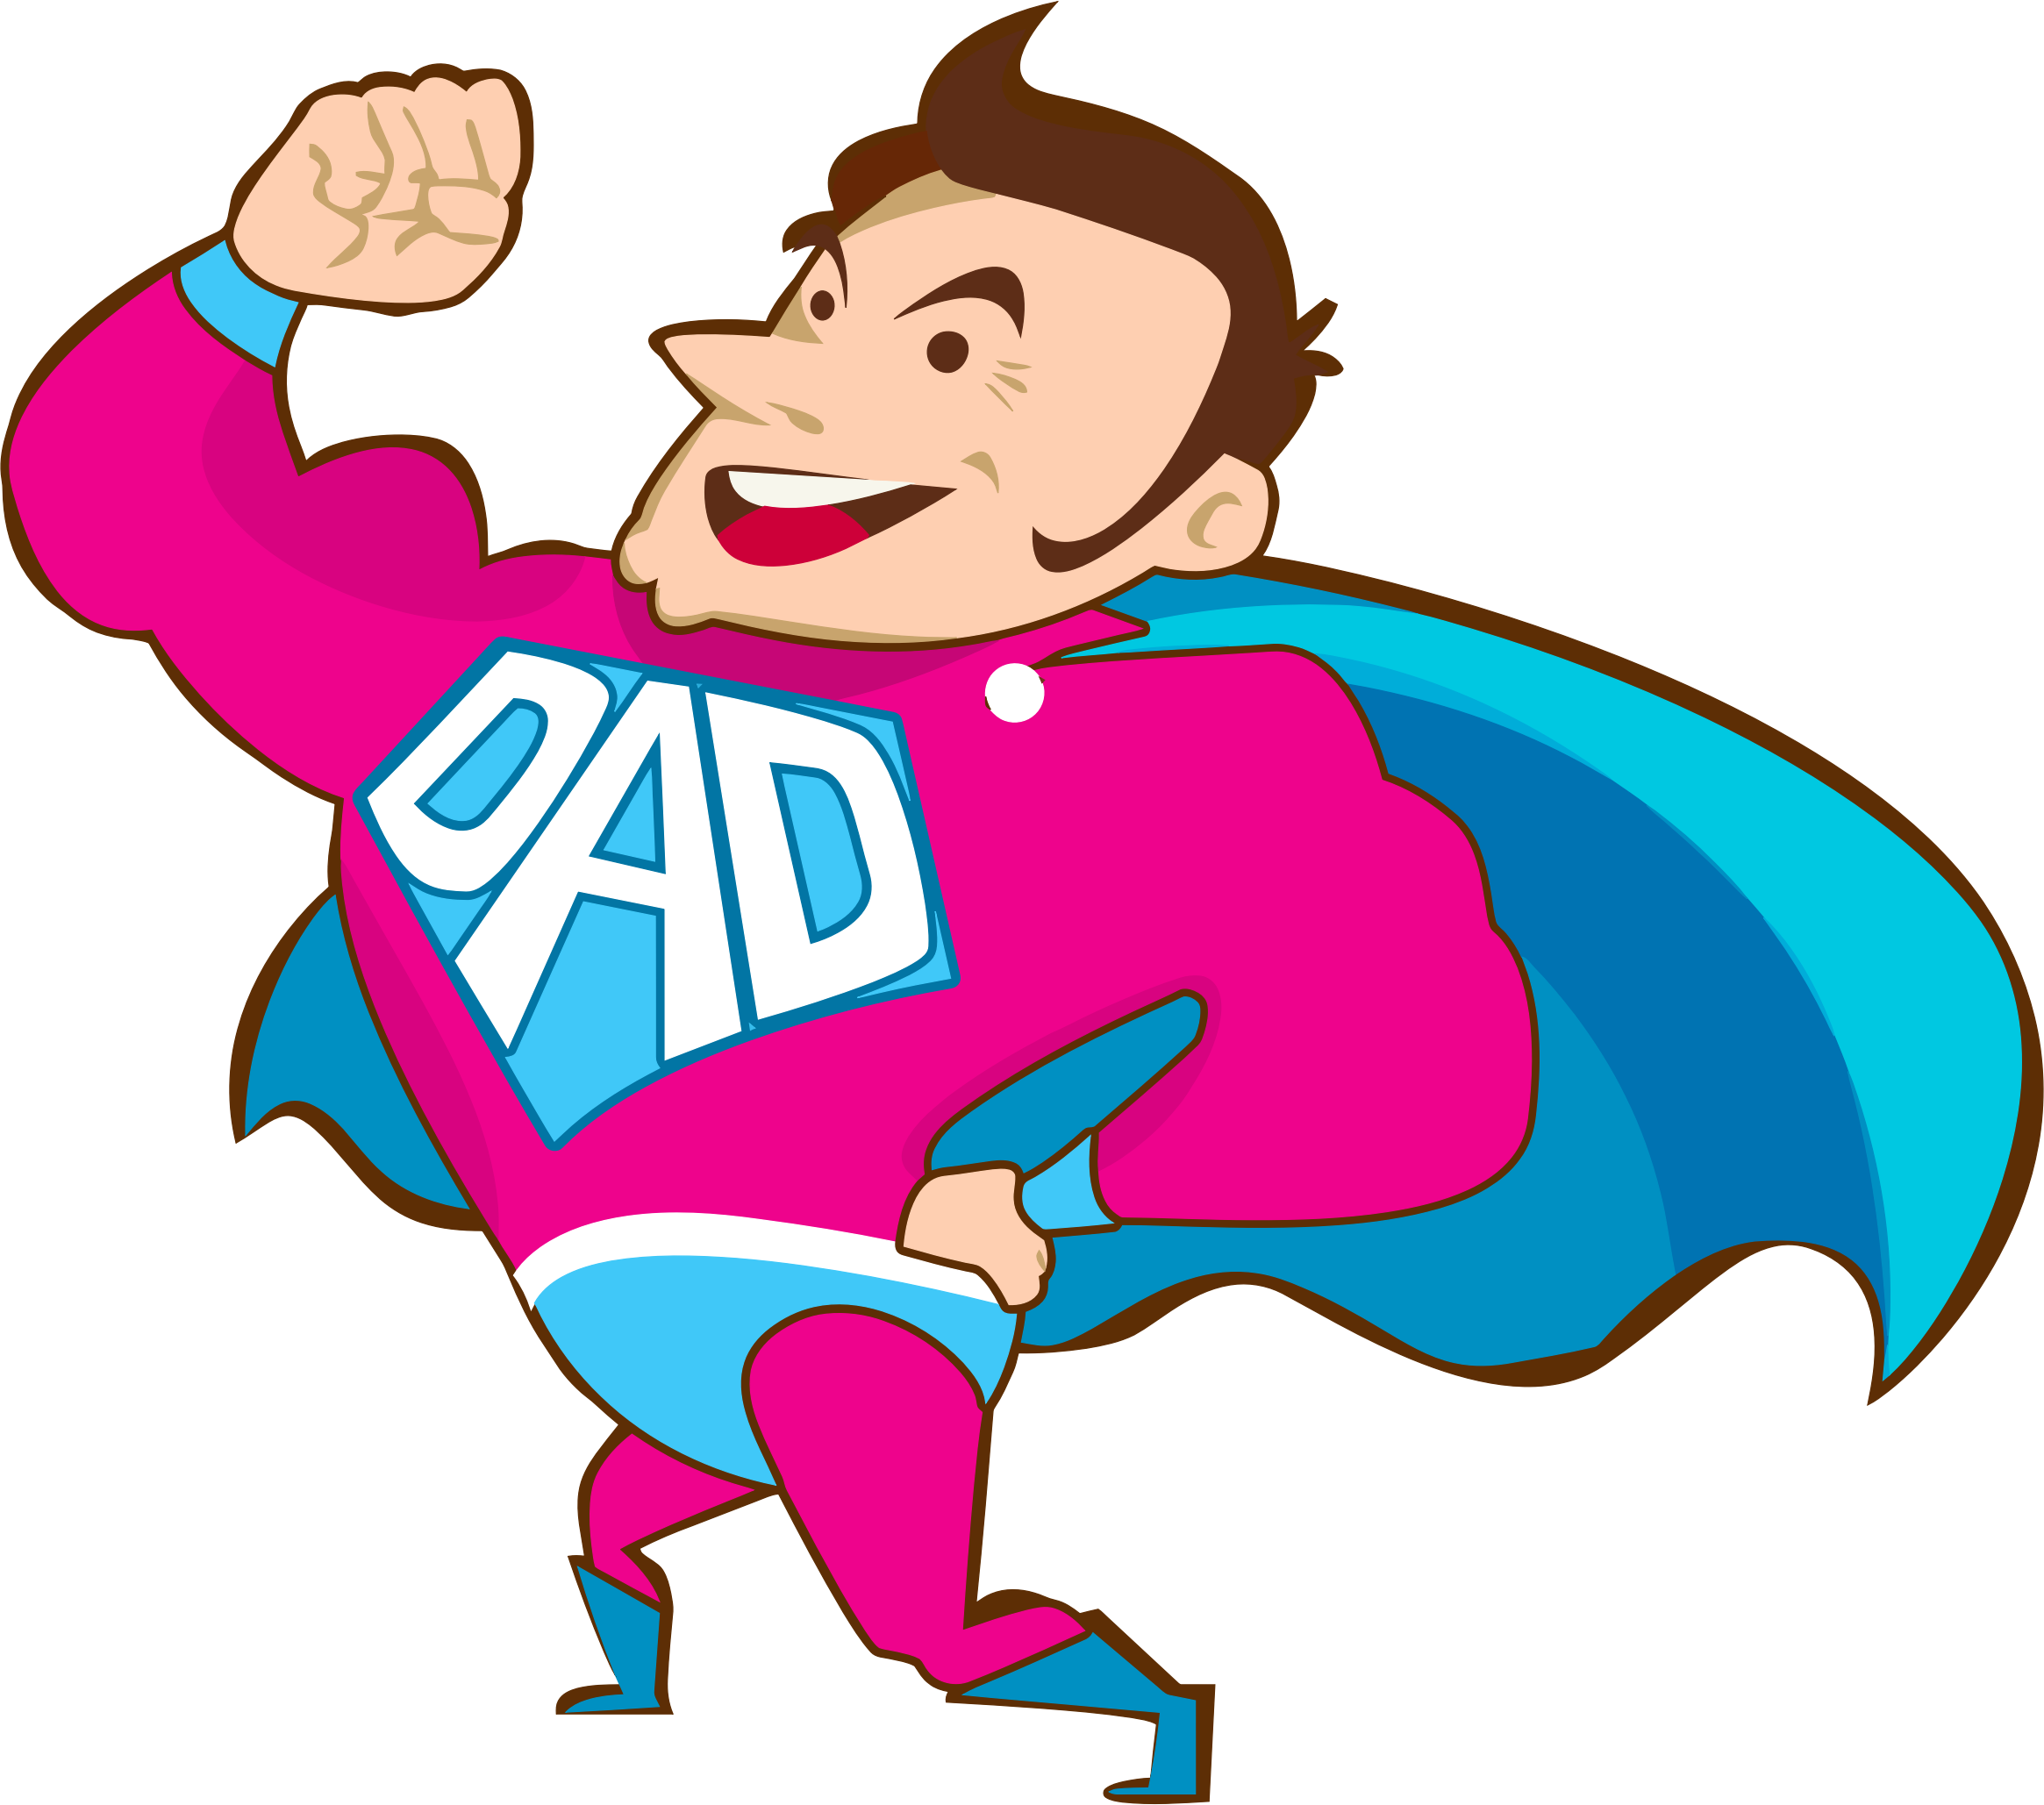 Super Dad 2 by GDJ